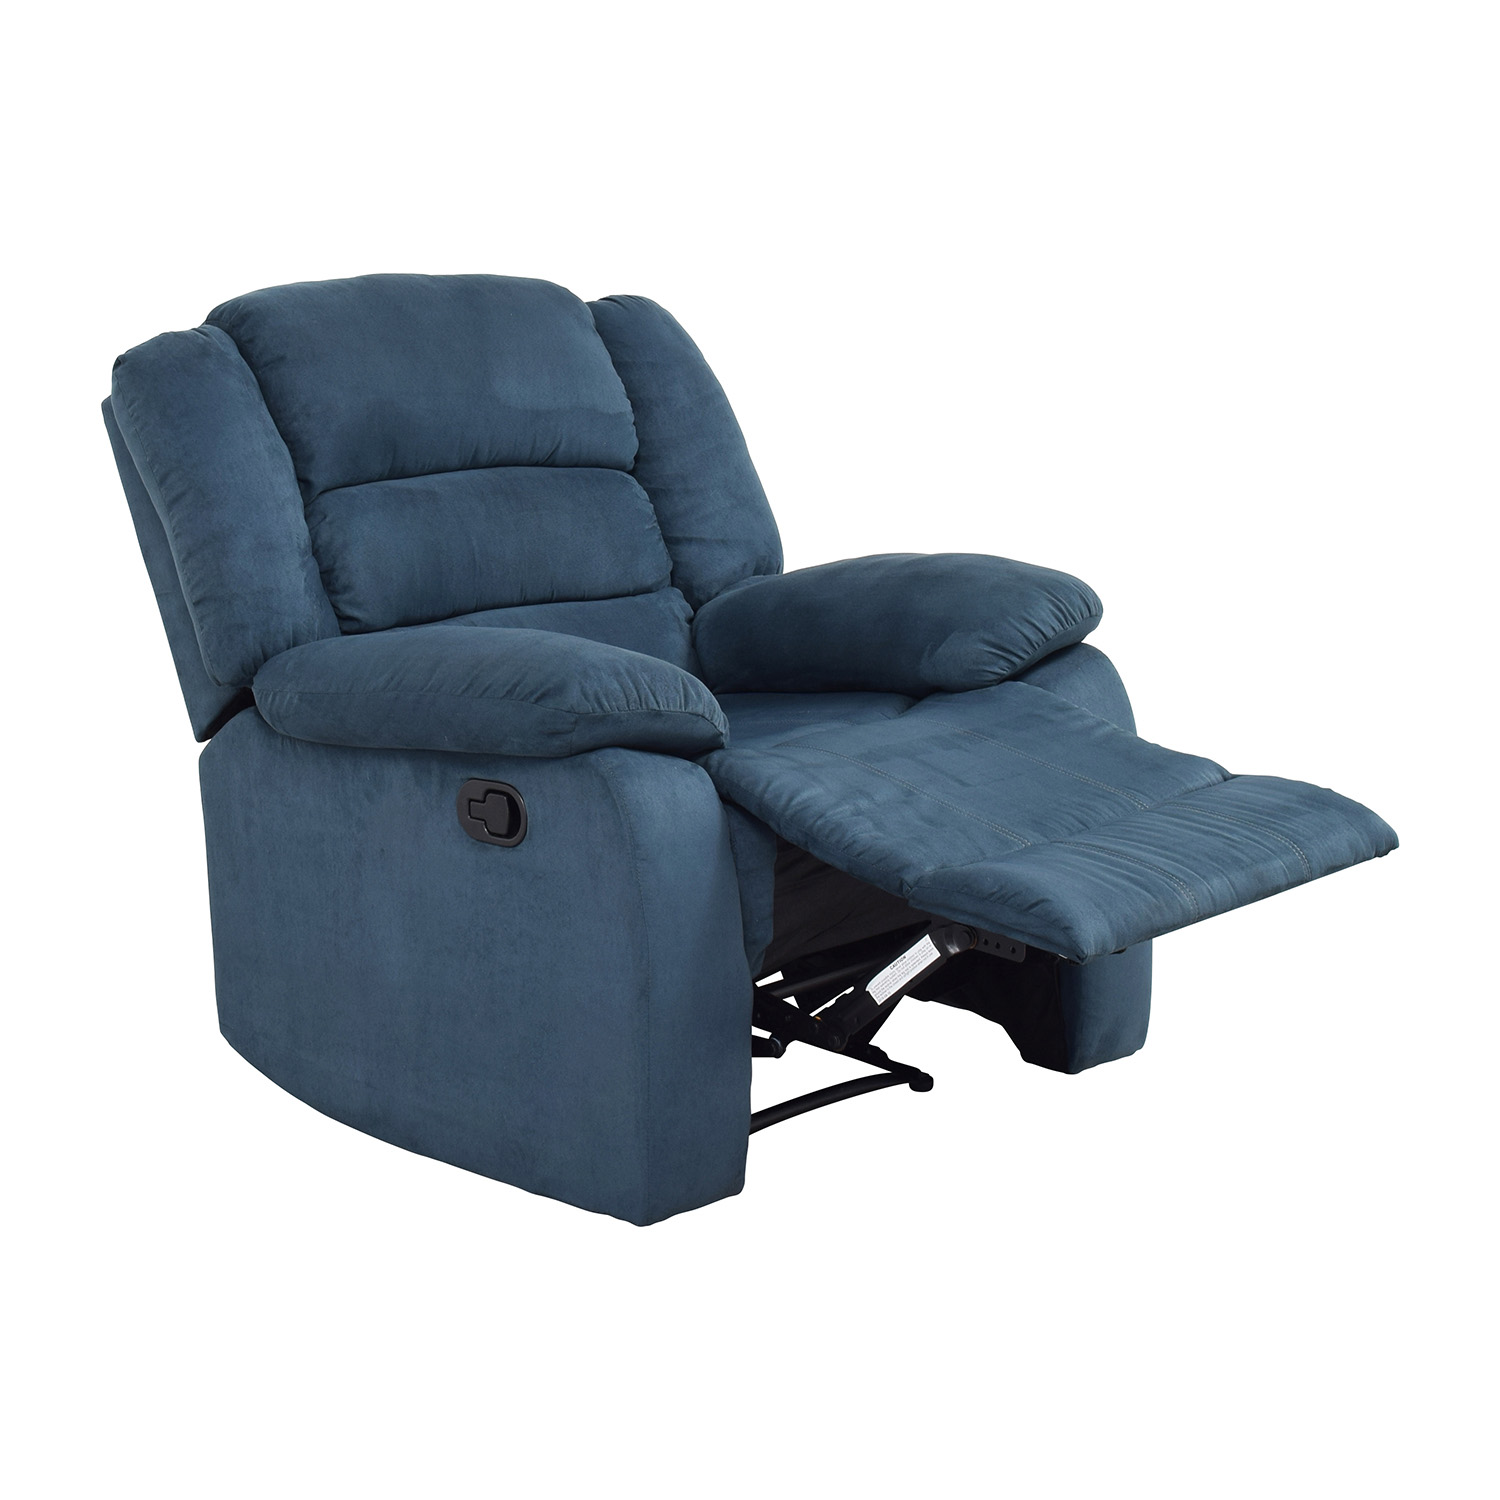 Contemporary Recliners 58% Off  Nathaniel Home Nathaniel Home Express Addison